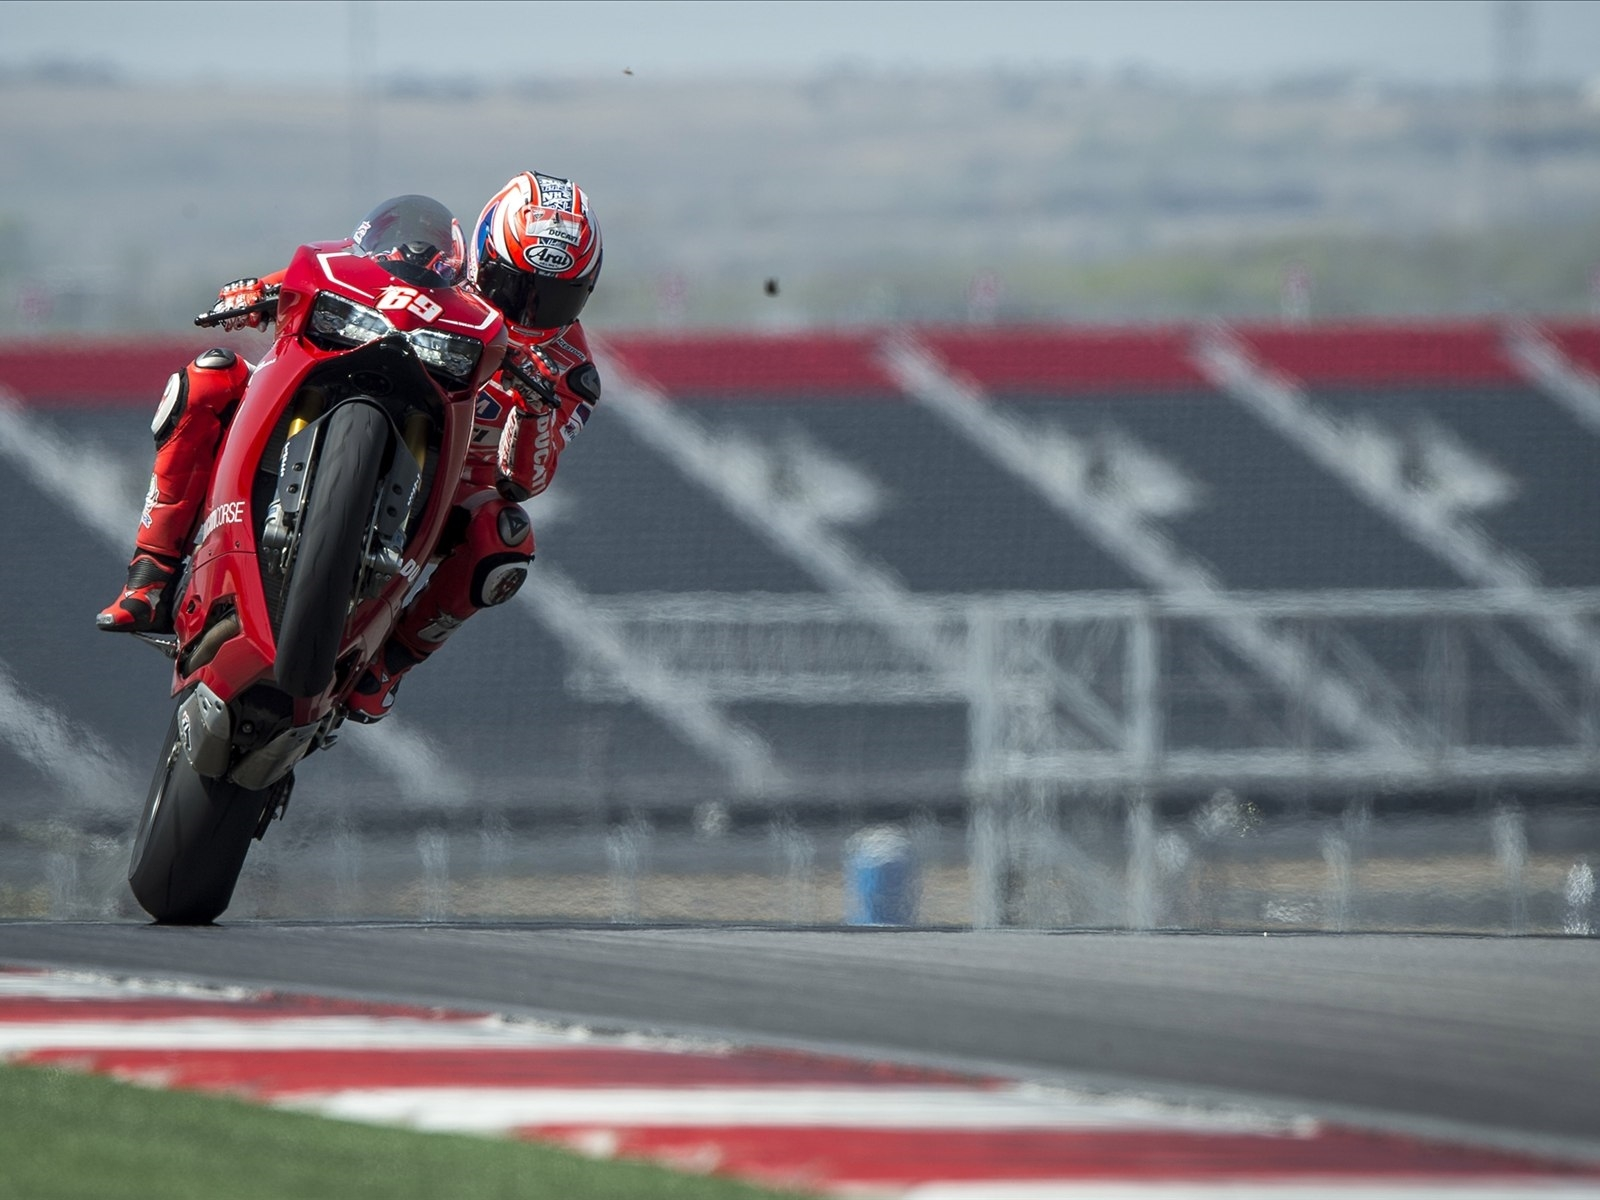 Superbike Hd Wallpaper Full Screen: Ducati Superbike Download Wallpaper